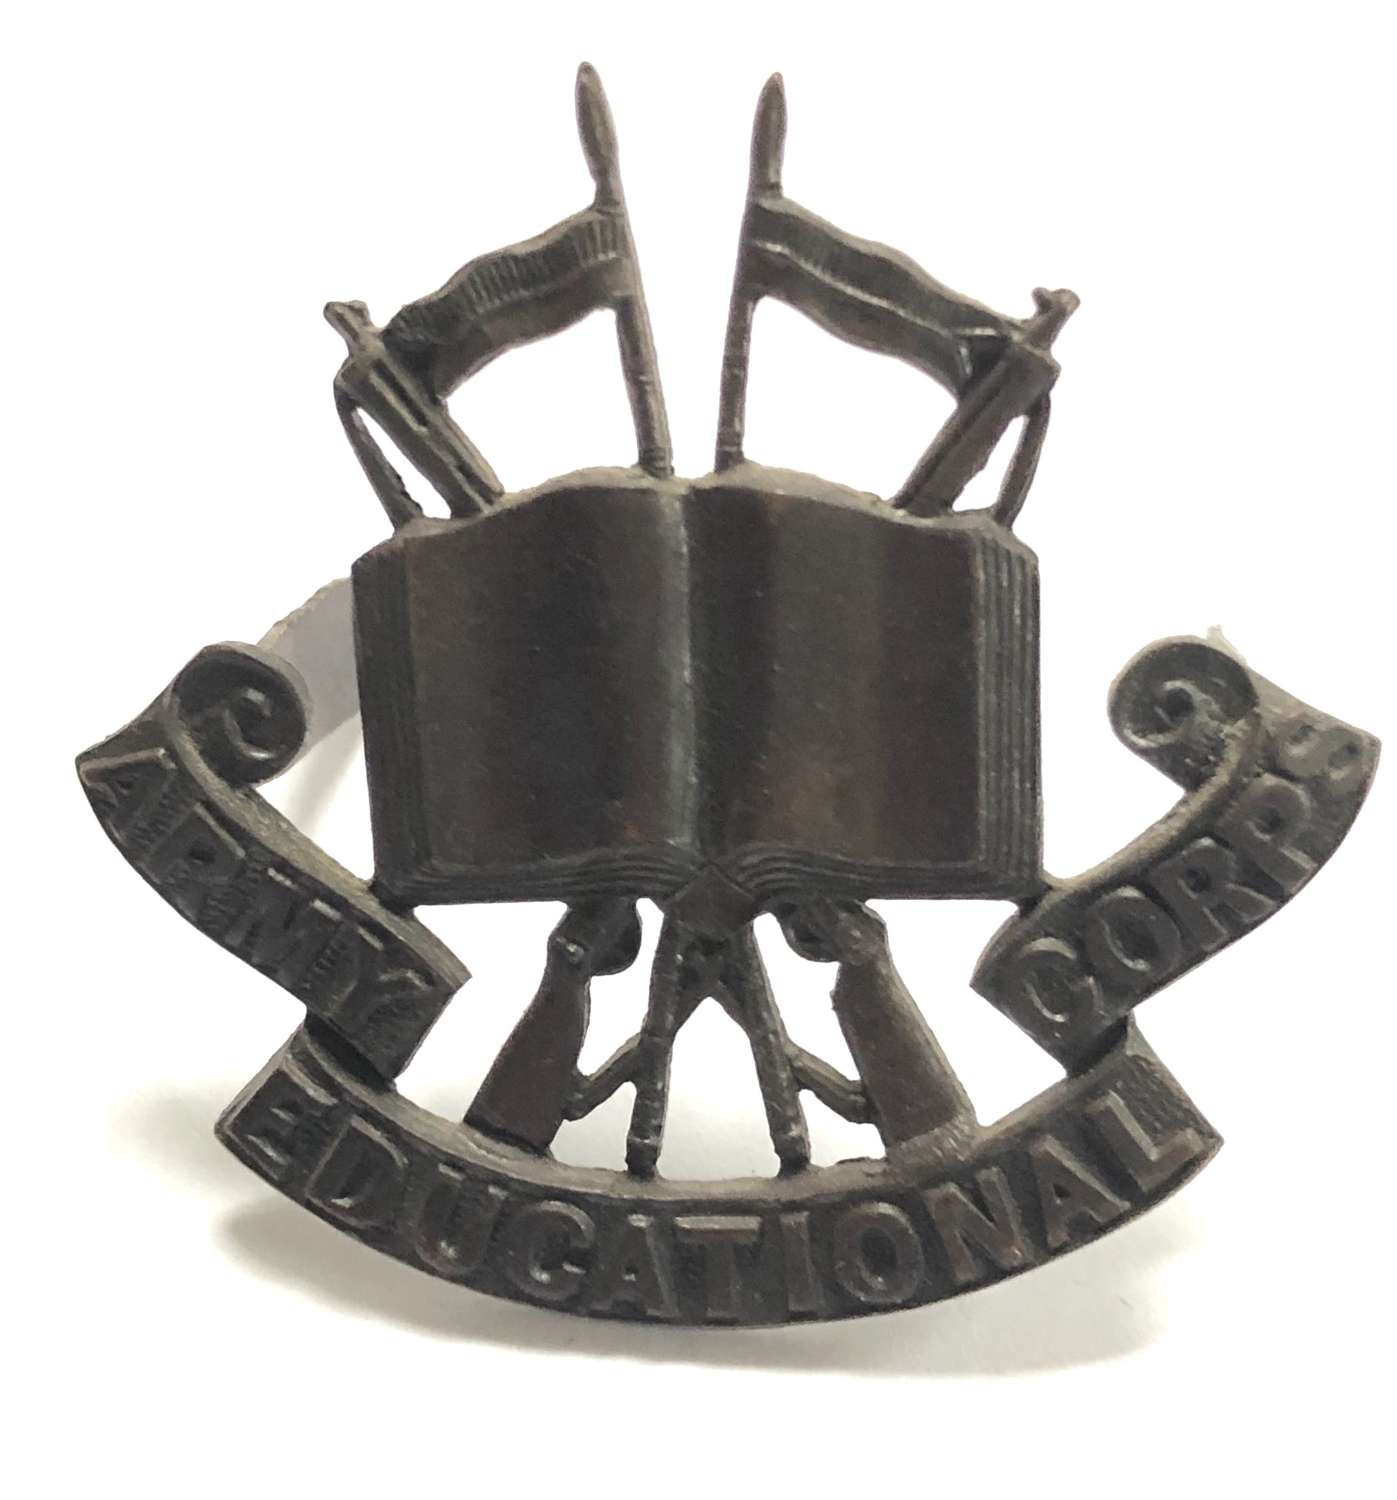 Army Educational Corps Officer's OSD cap badge circa 1920-46